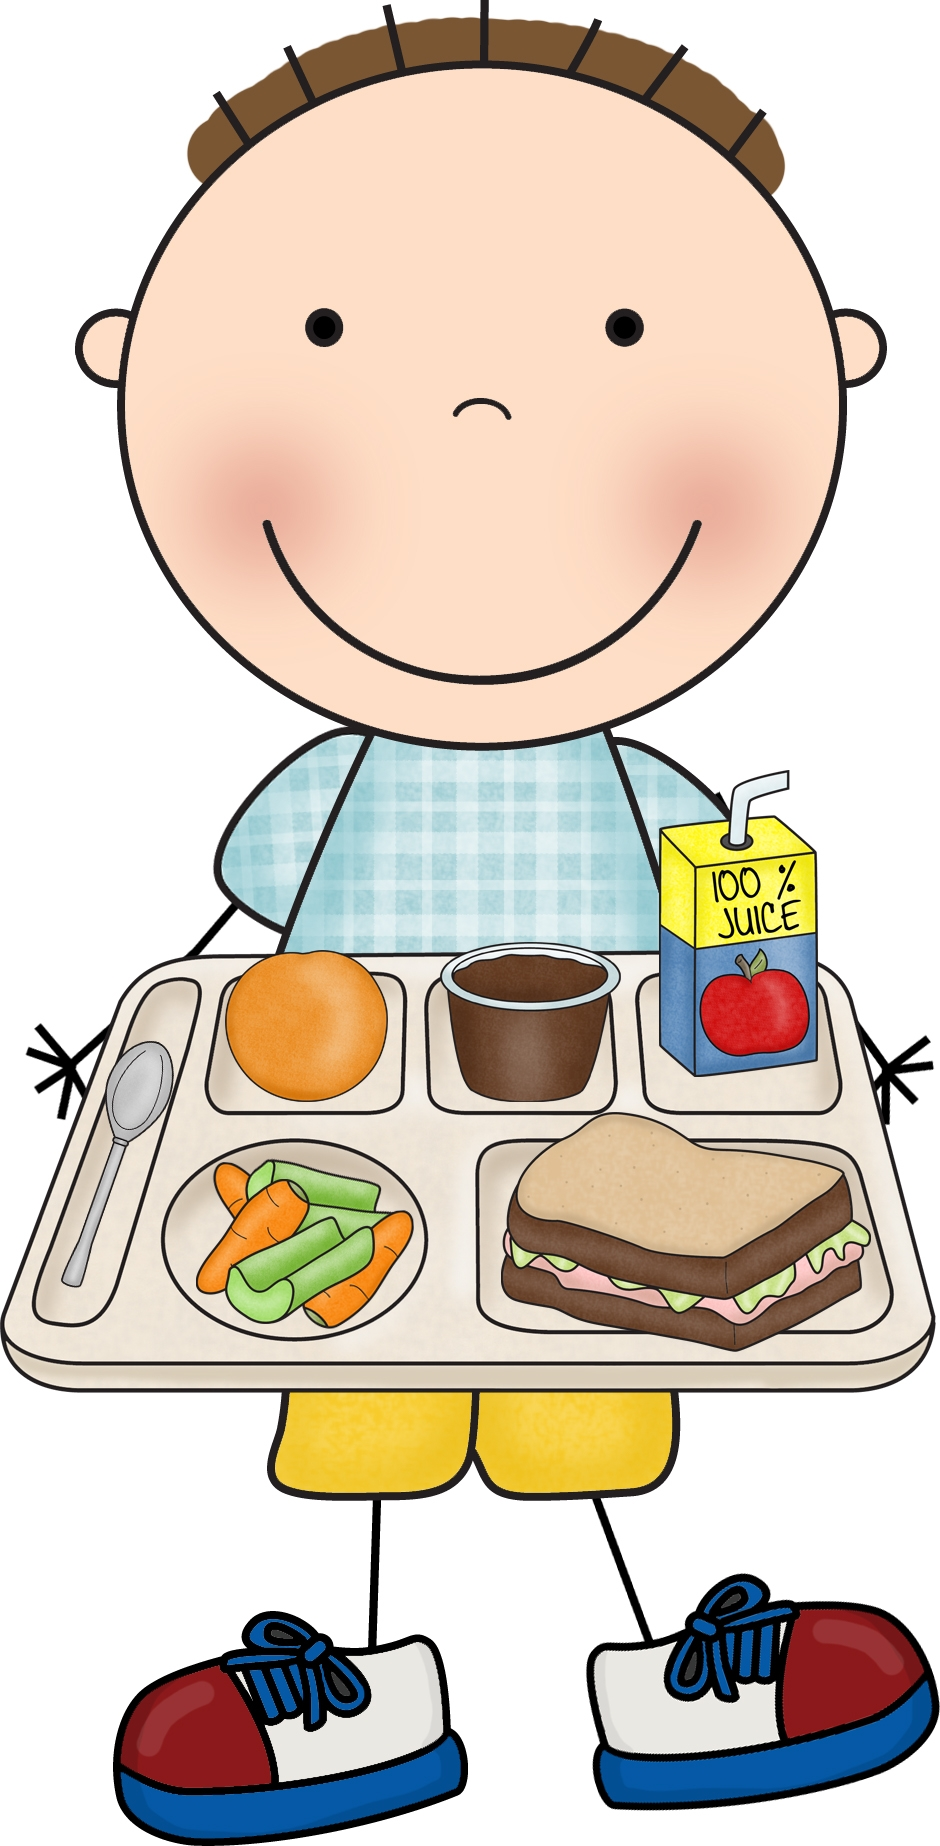 cafeteria clipart at getdrawings com free for personal use rh getdrawings com school cafeteria clip art free school cafeteria clip art free